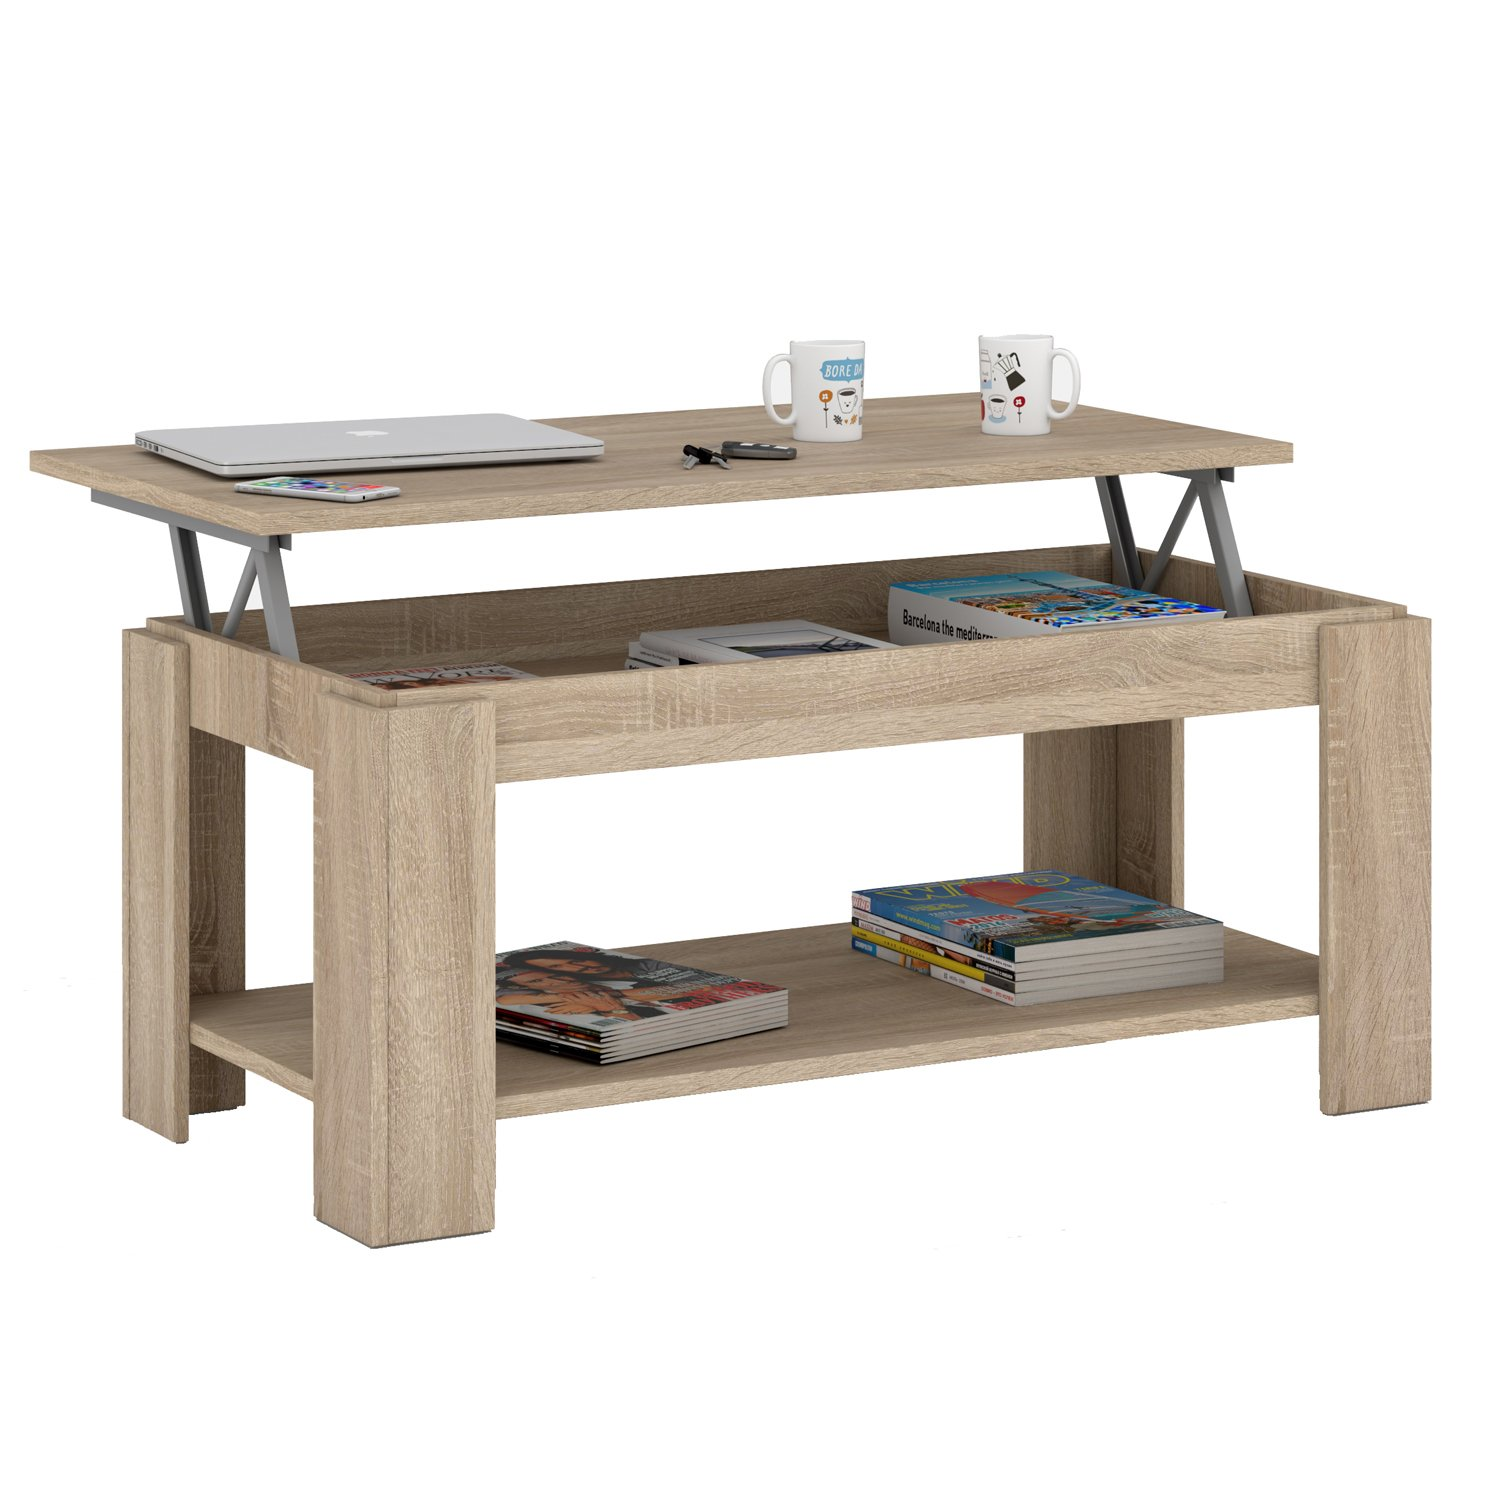 Stylish lift top coffee dining table with storage shelf canadian oak ebay - Table basse plateau relevable conforama ...